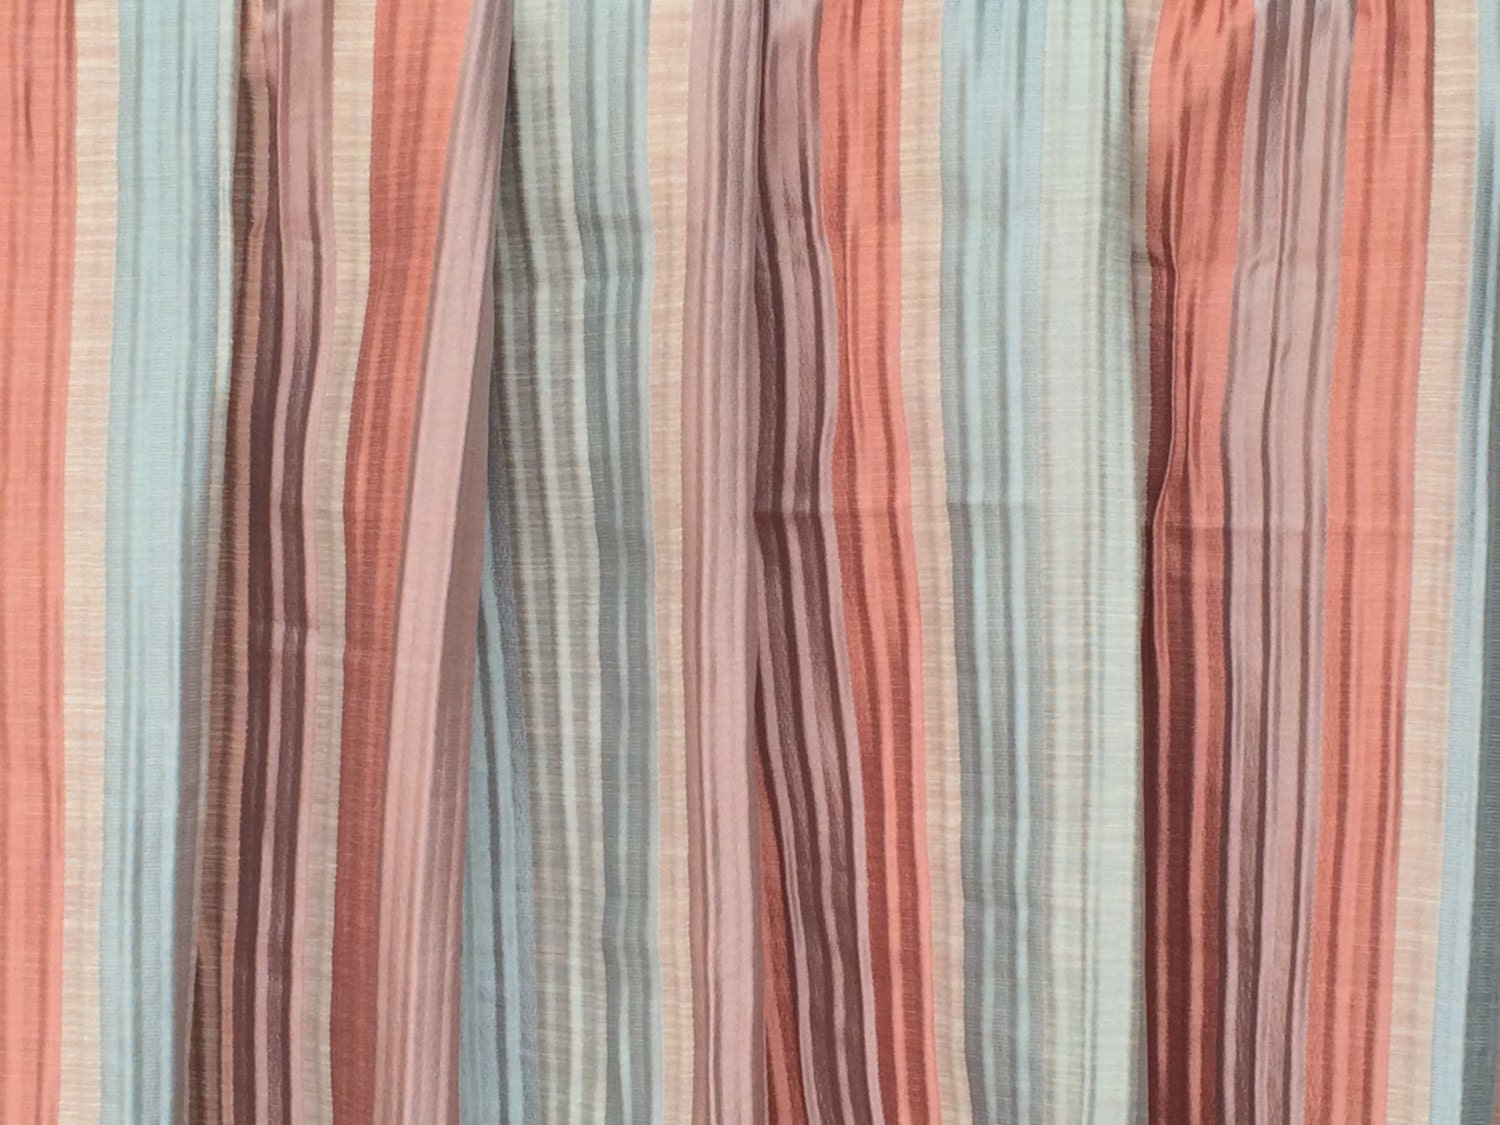 Peach And Teal Stripes Curtain Fabric By The Yard Upholstery ...